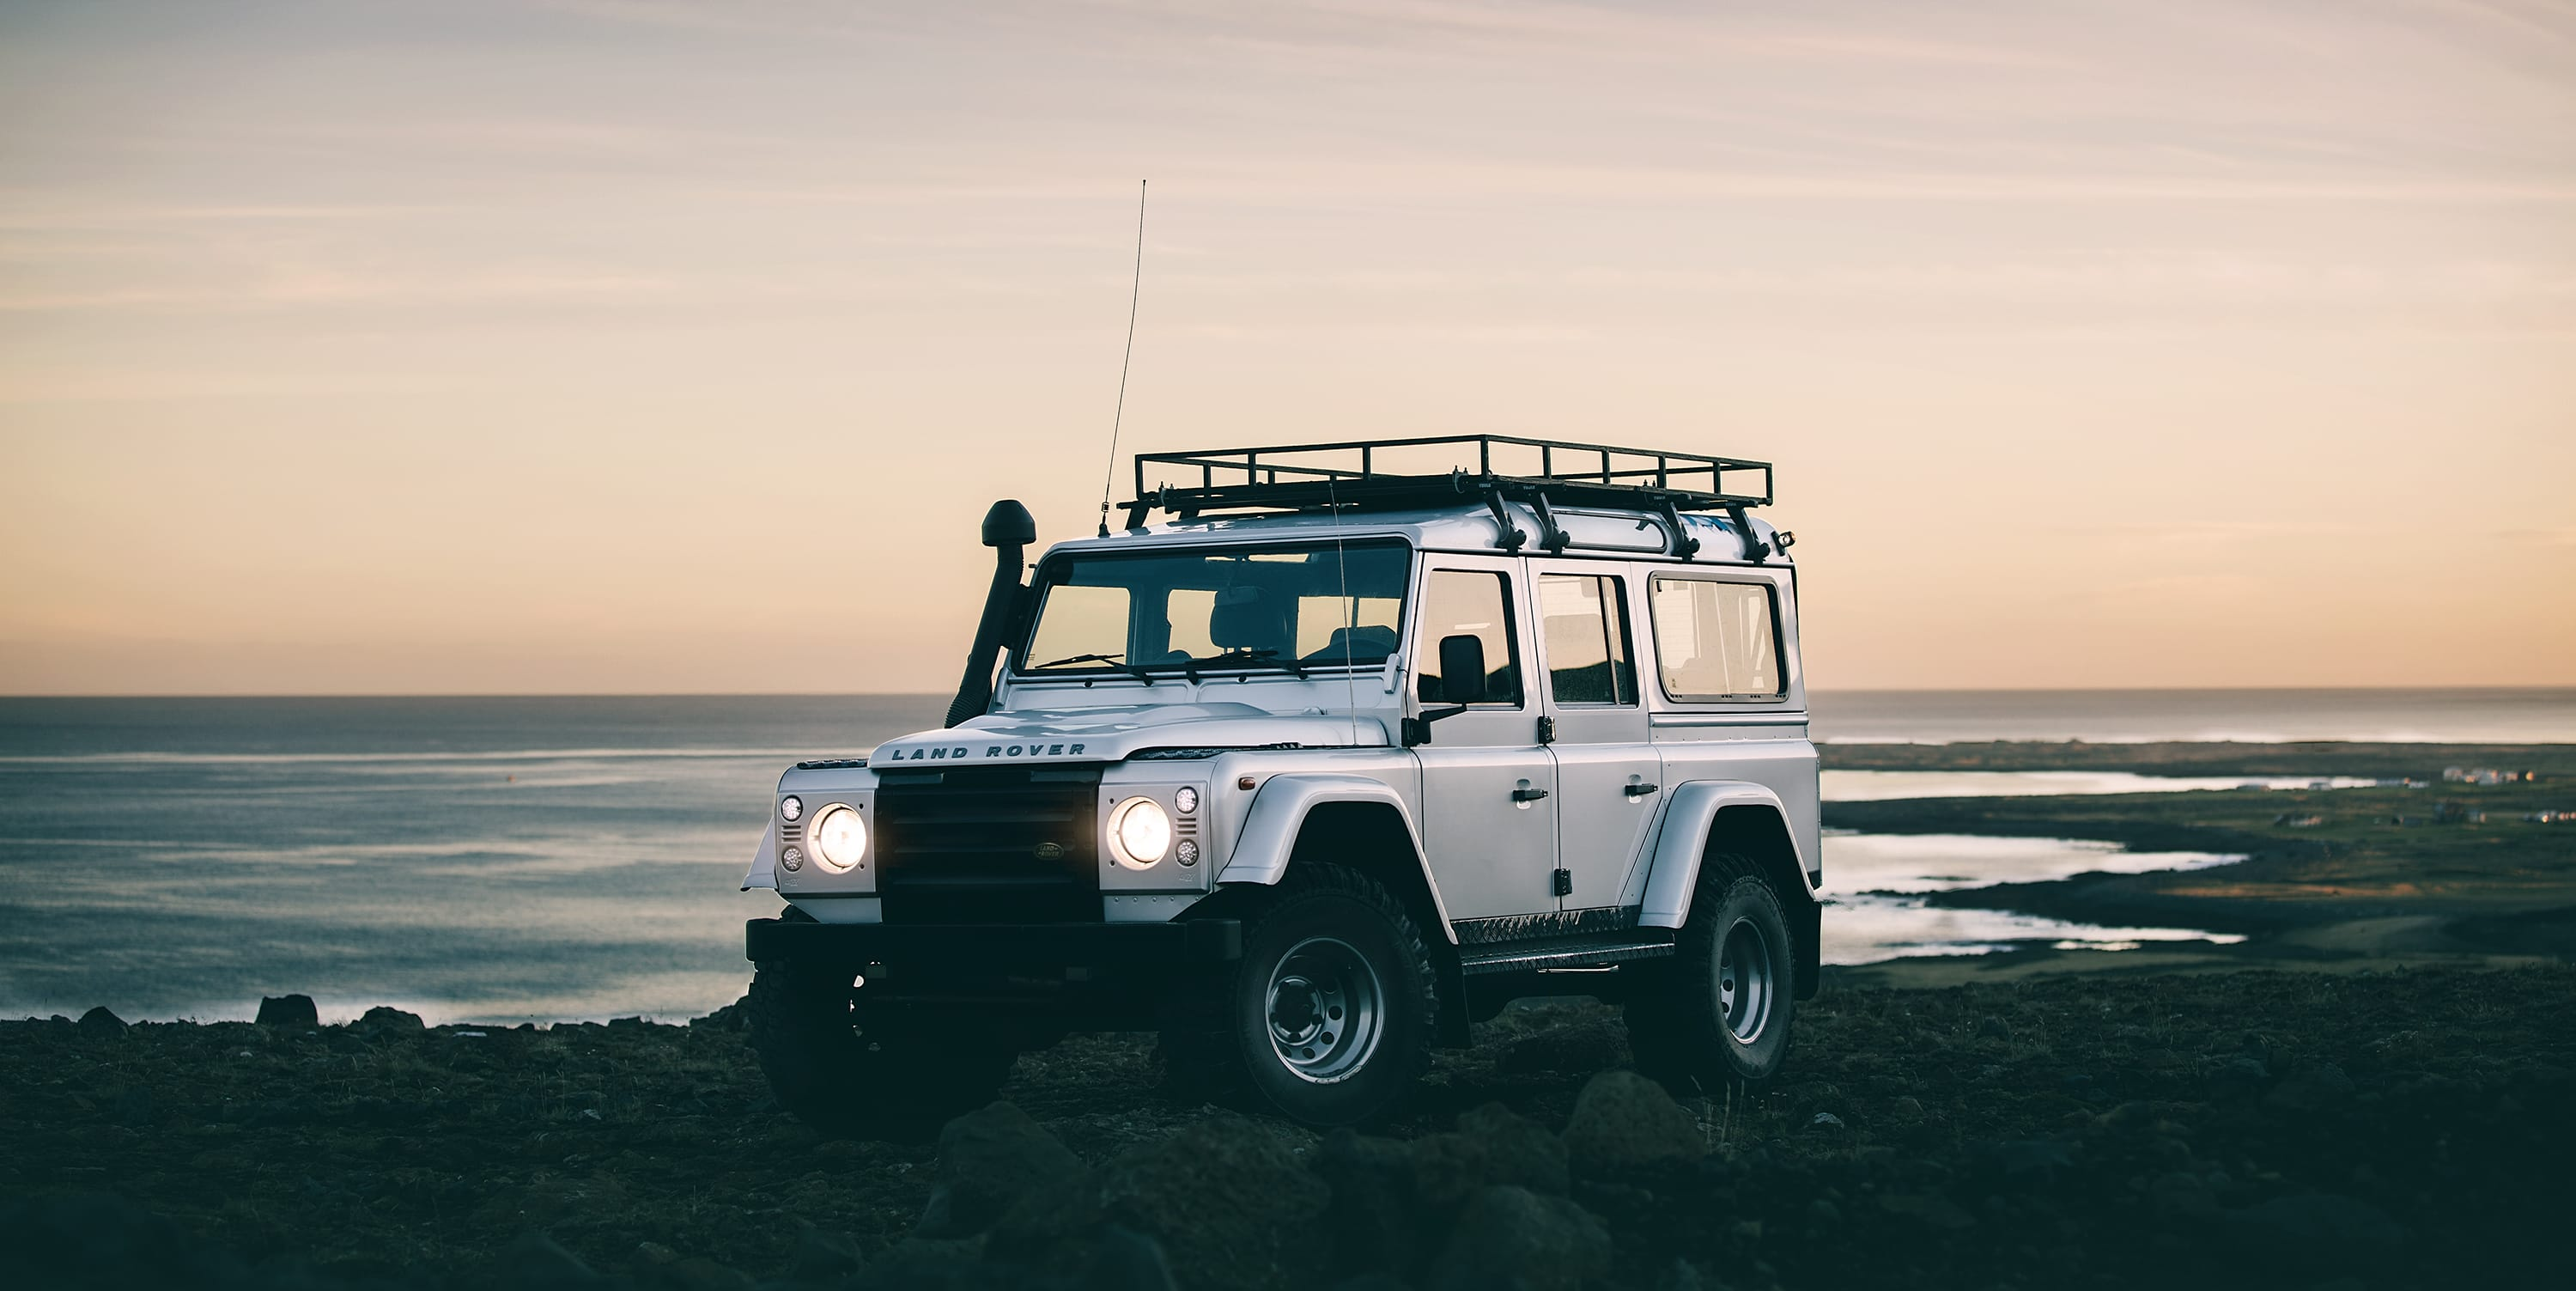 https://hestagentur.no/andreas-kleiberg/land-rover-defender/